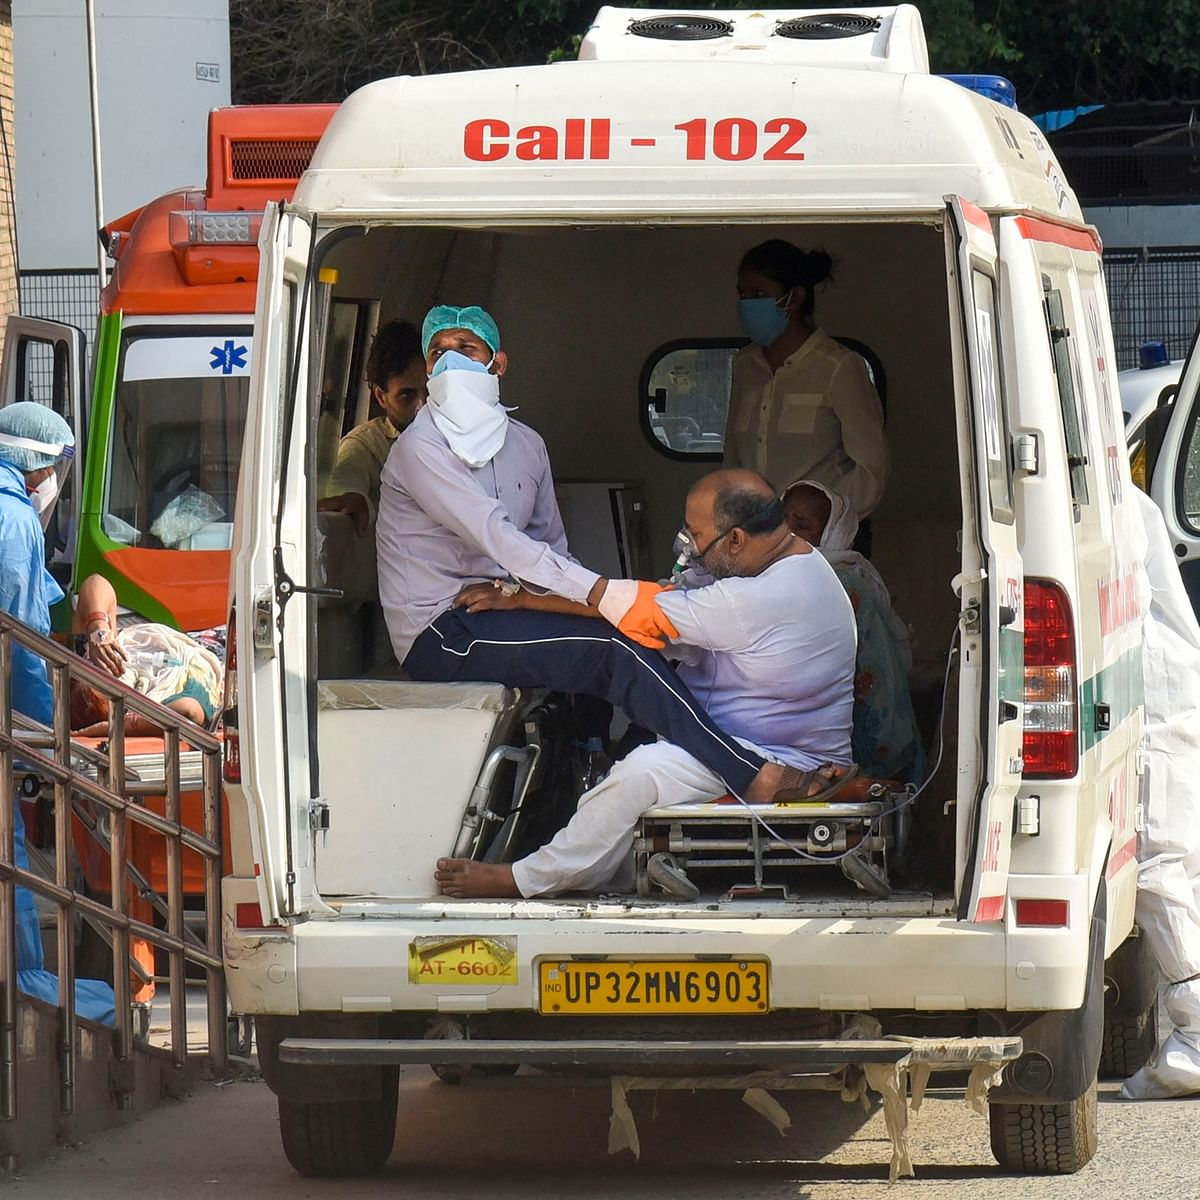 Madhya Pradesh: Ambulance in Khachrod charges Rs 11,000 for 25 km for ailing patient